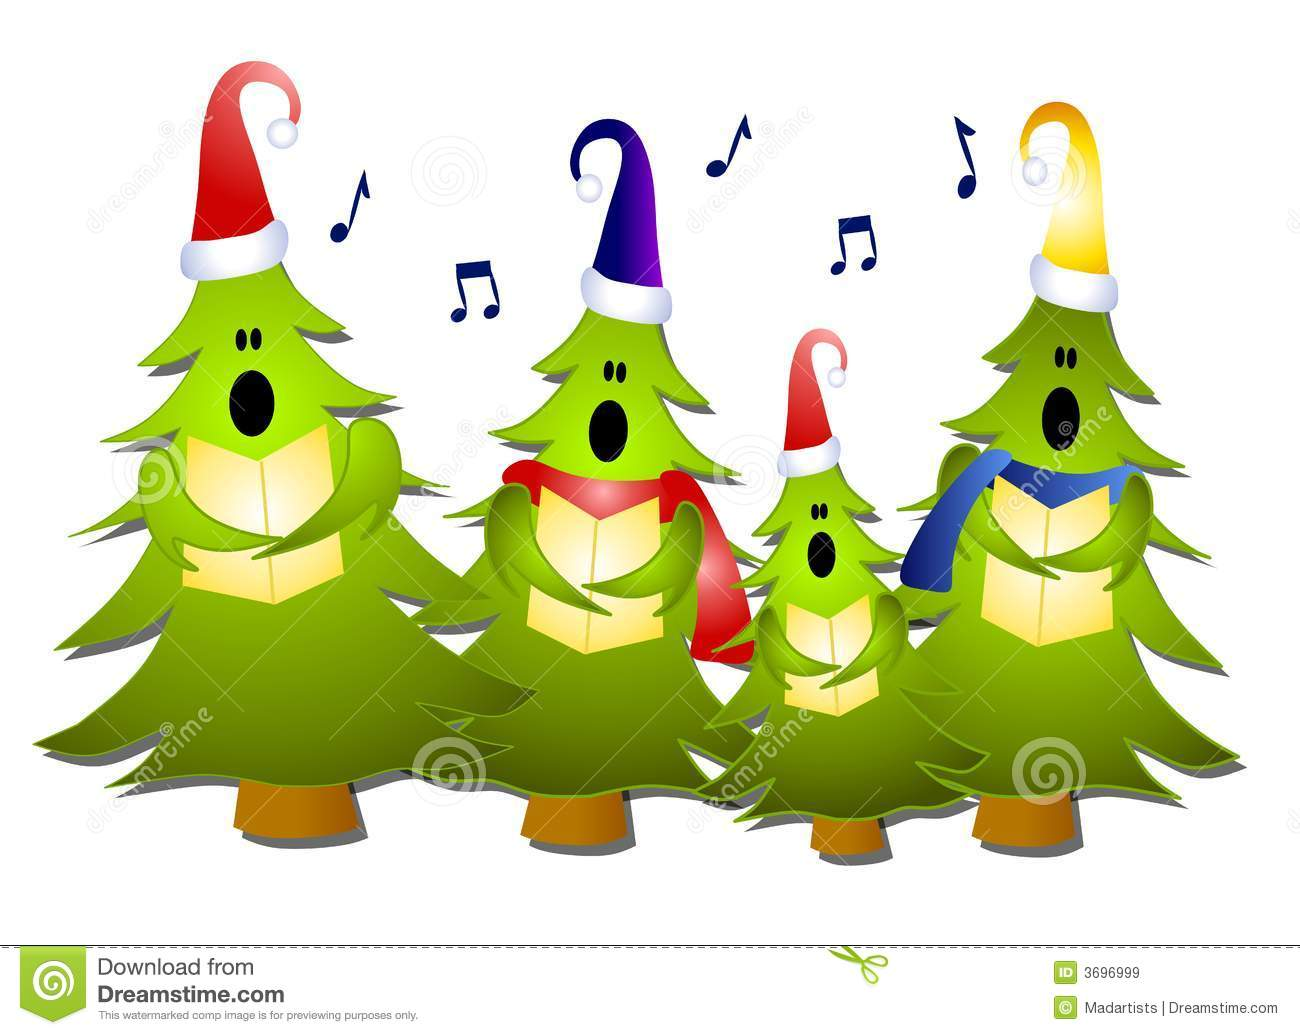 Clip Art Illustration Of A Group Of Chri-Clip Art Illustration Of A Group Of Christmas Tree Carolers Singing-12